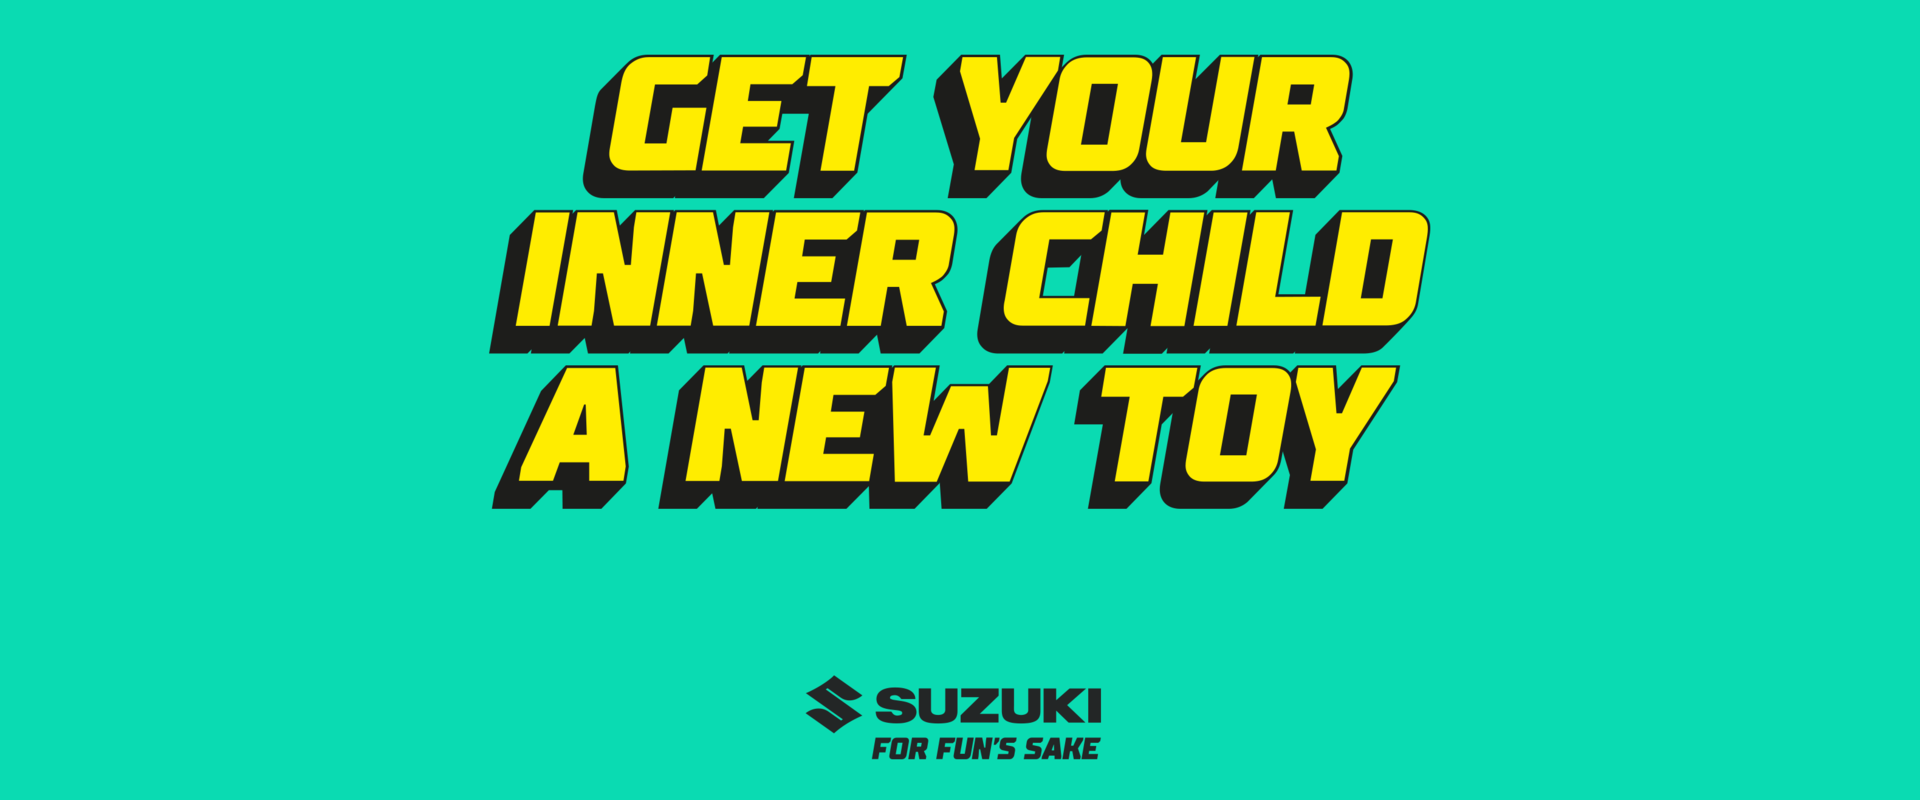 Get Your Inner Child A New Toy